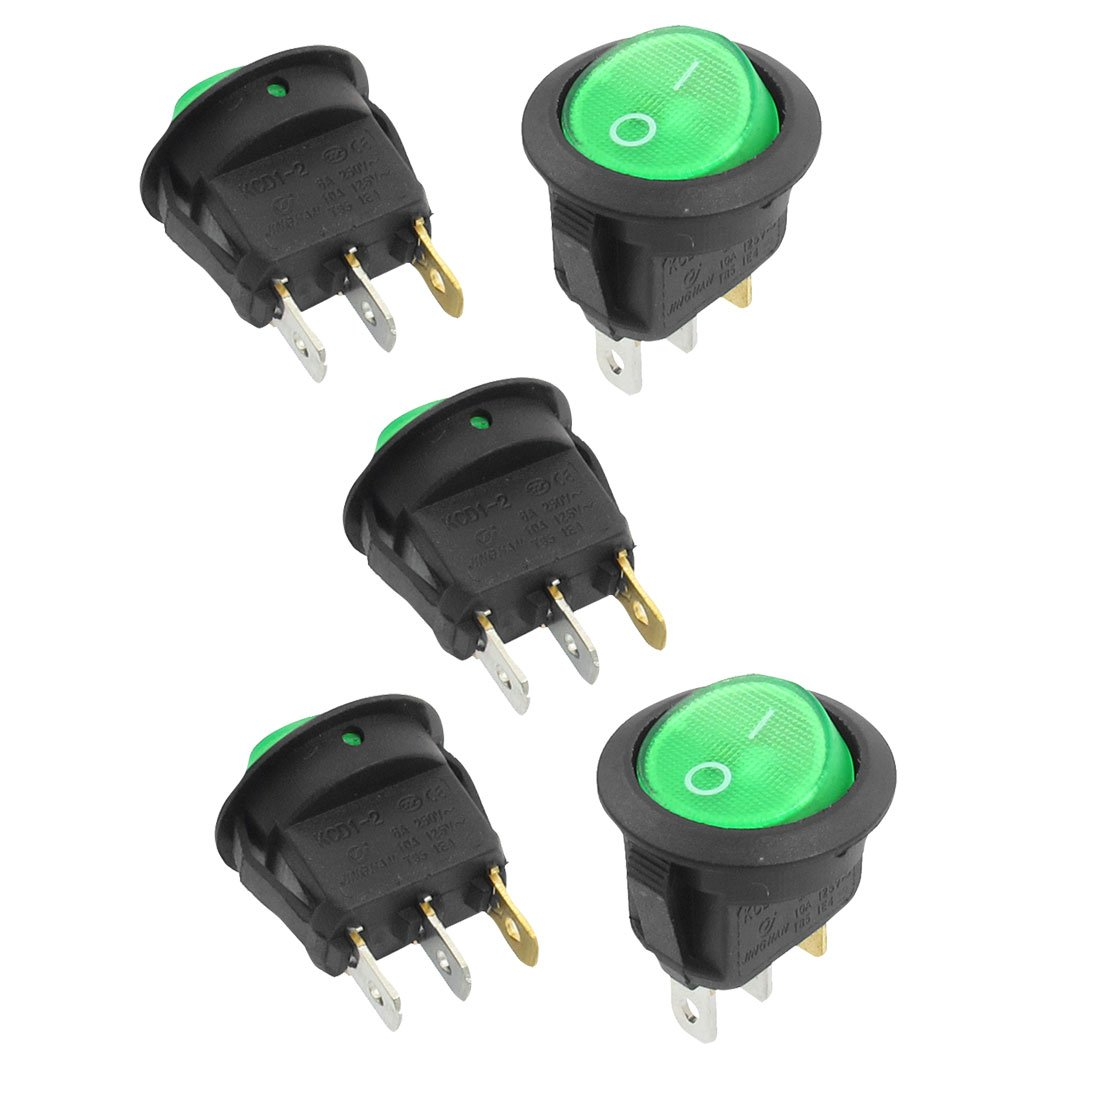 High Quality 5 Pcs 3 Pin Spst Green Neon Light On Off Round Rocker With Wire Leads Details About Toggle Switch Ac 6a 250v 10a 125v